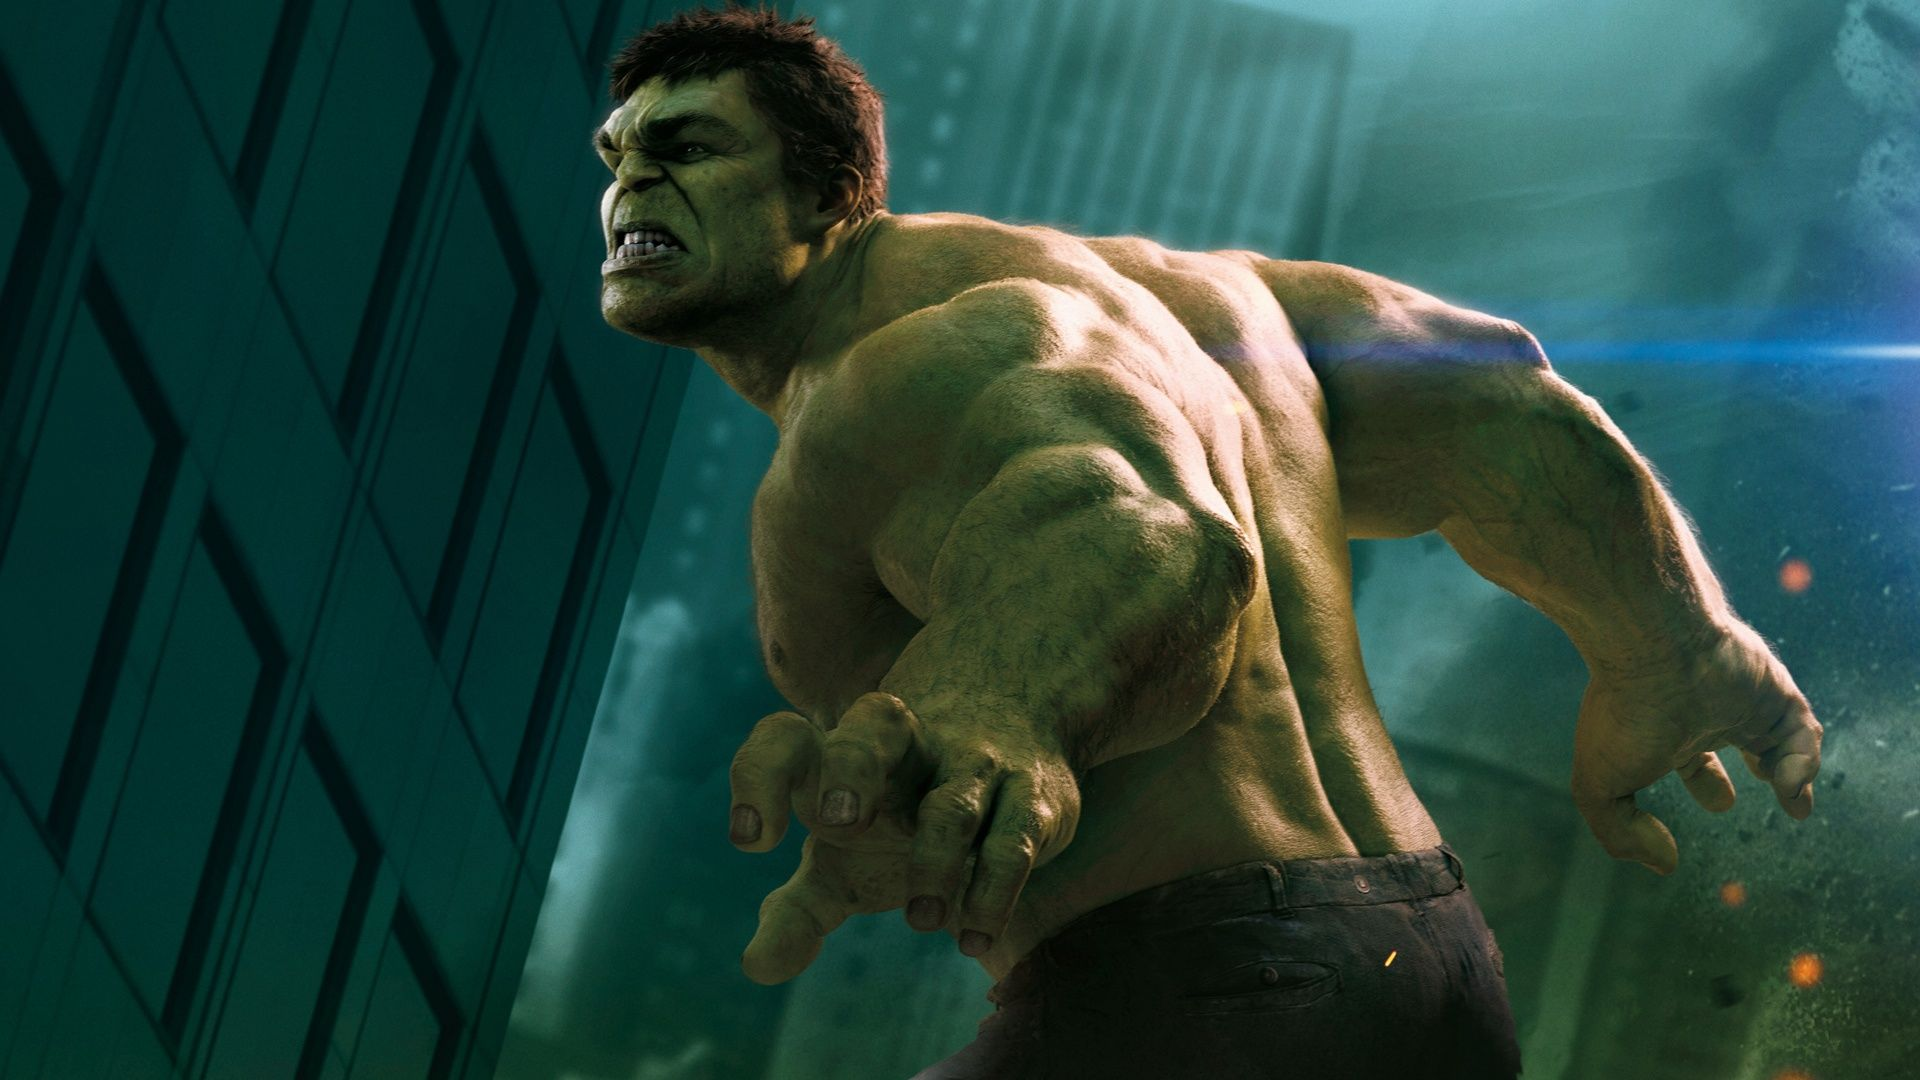 HD Wallpapers Widescreen 1080P 3D   Hulk in The Avengers Wallpapers     HD Wallpapers Widescreen 1080P 3D   Hulk in The Avengers Wallpapers  Hd  1080p   HD Wallpapers